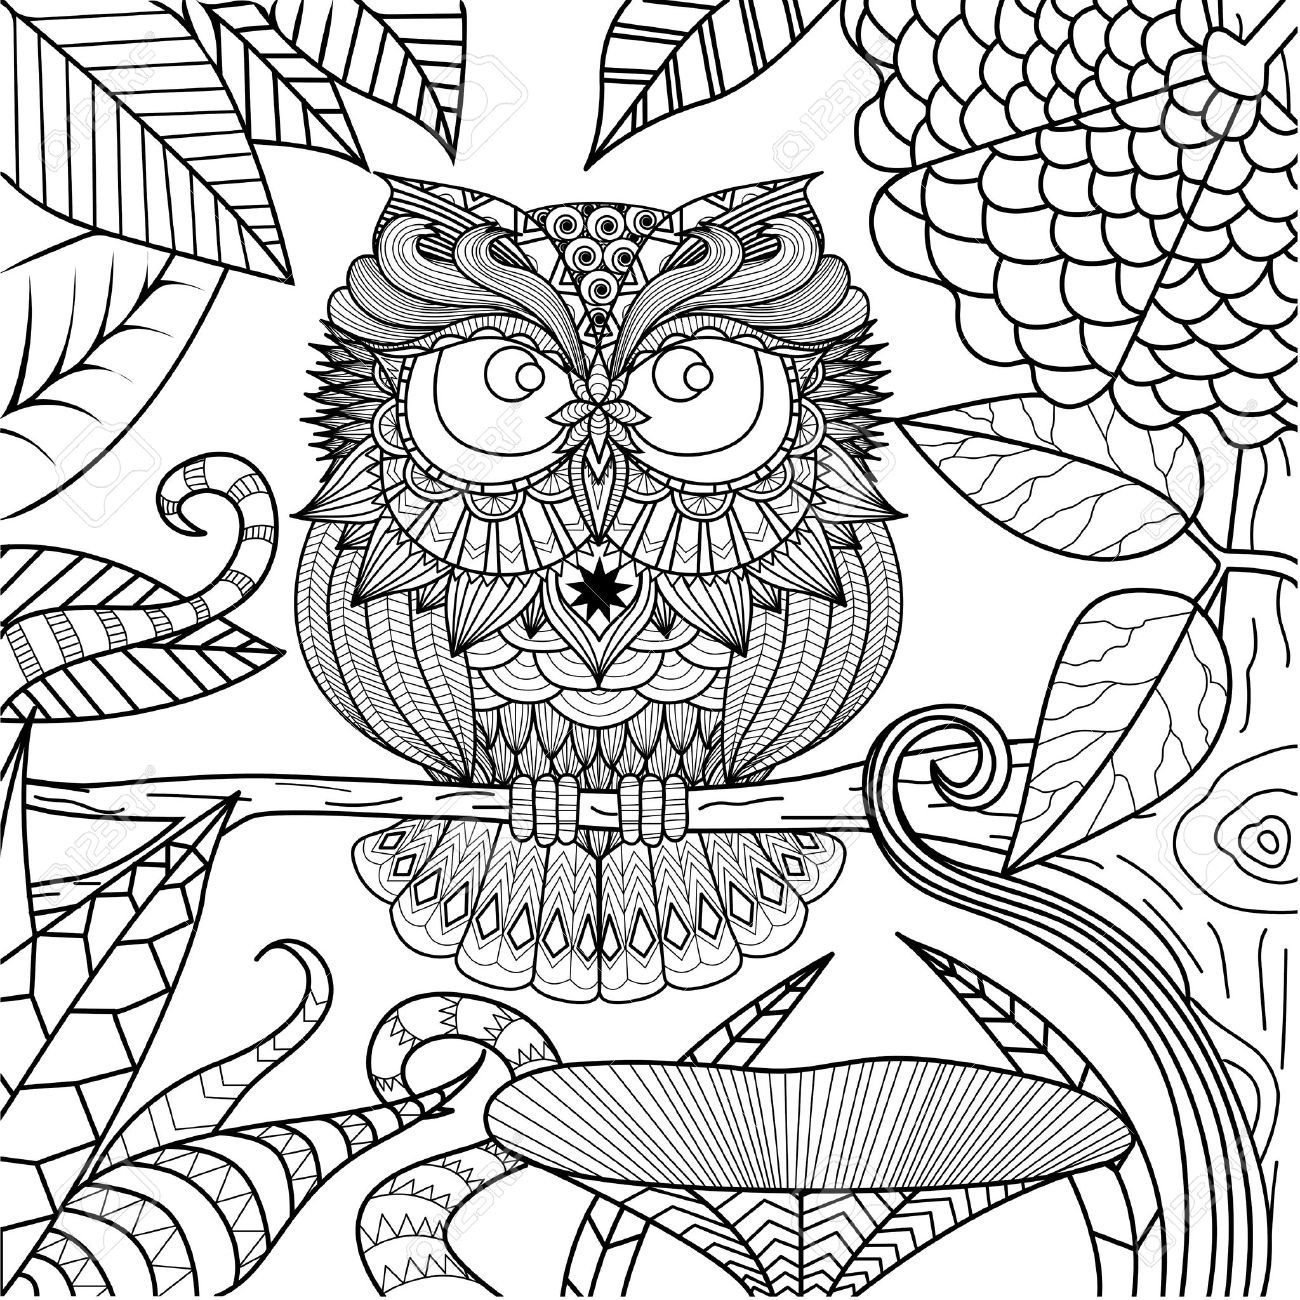 abstract owl coloring pages coloring pages for adults abstract owls owl coloring coloring pages owl abstract